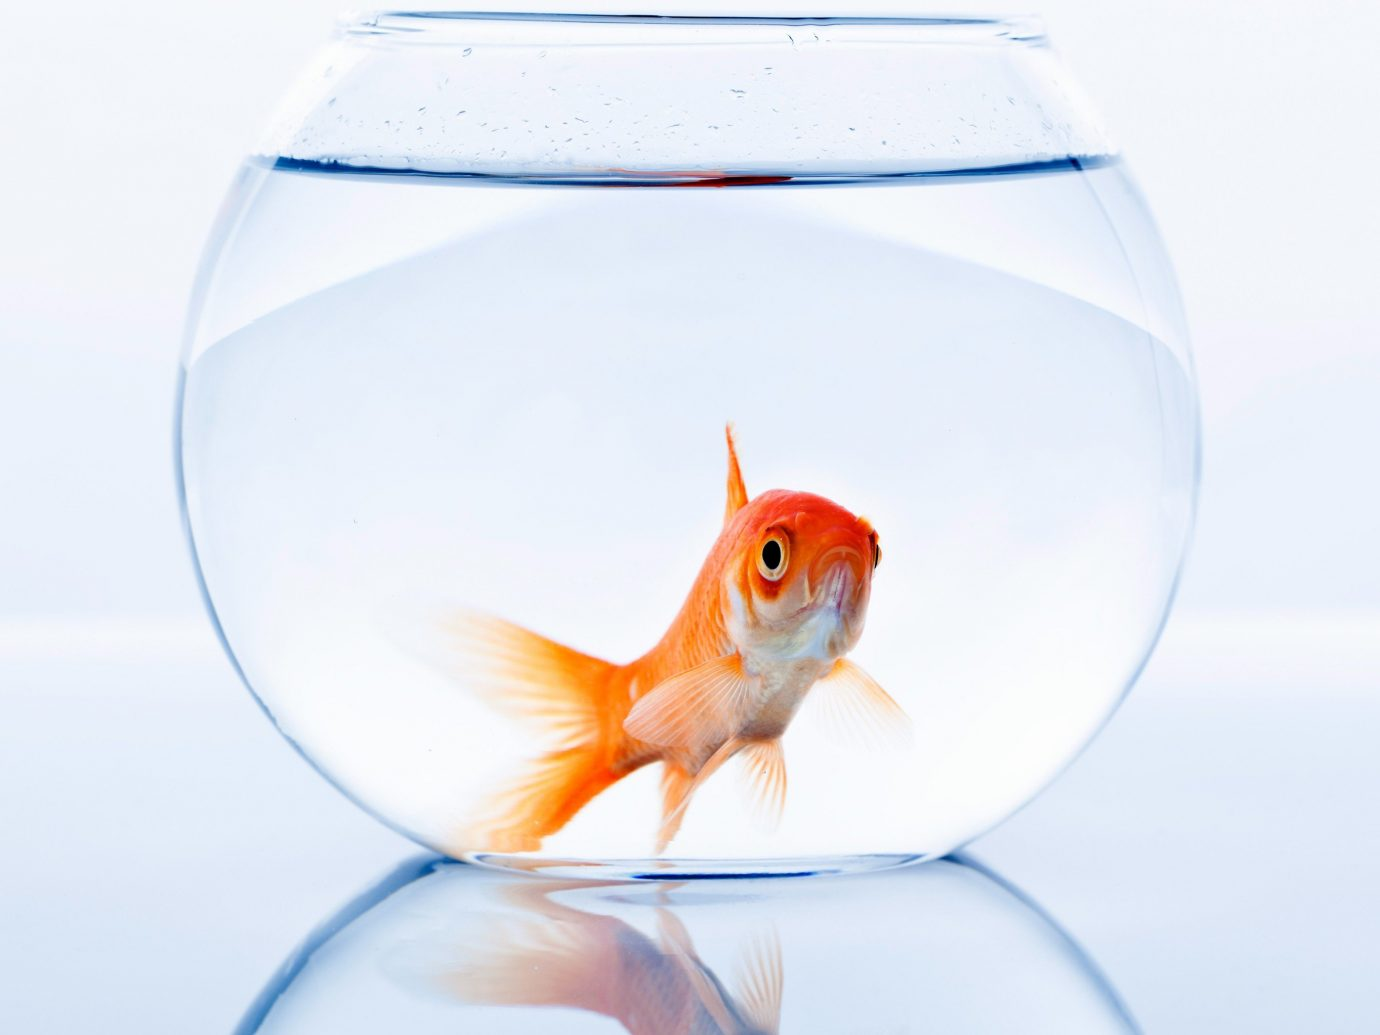 Hotels Offbeat fishbowl bubble goldfish fish vertebrate reflection vessel illustration bell jar